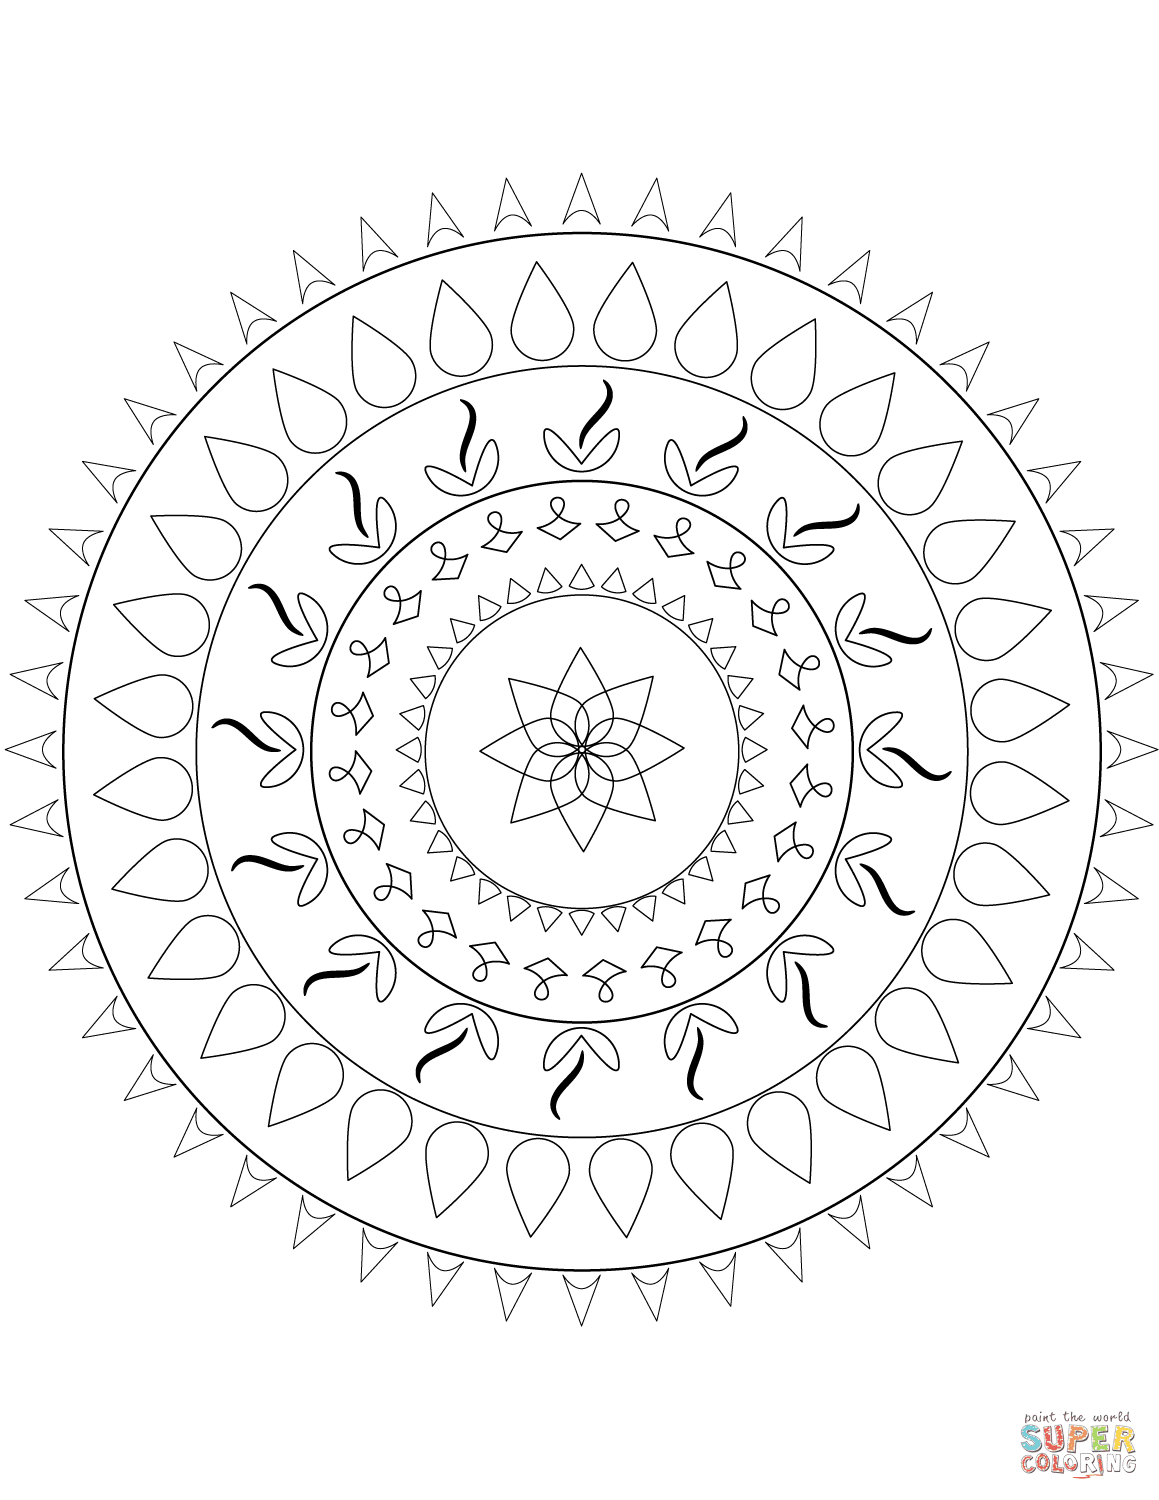 Simple Mandala coloring page | Free Printable Coloring Pages